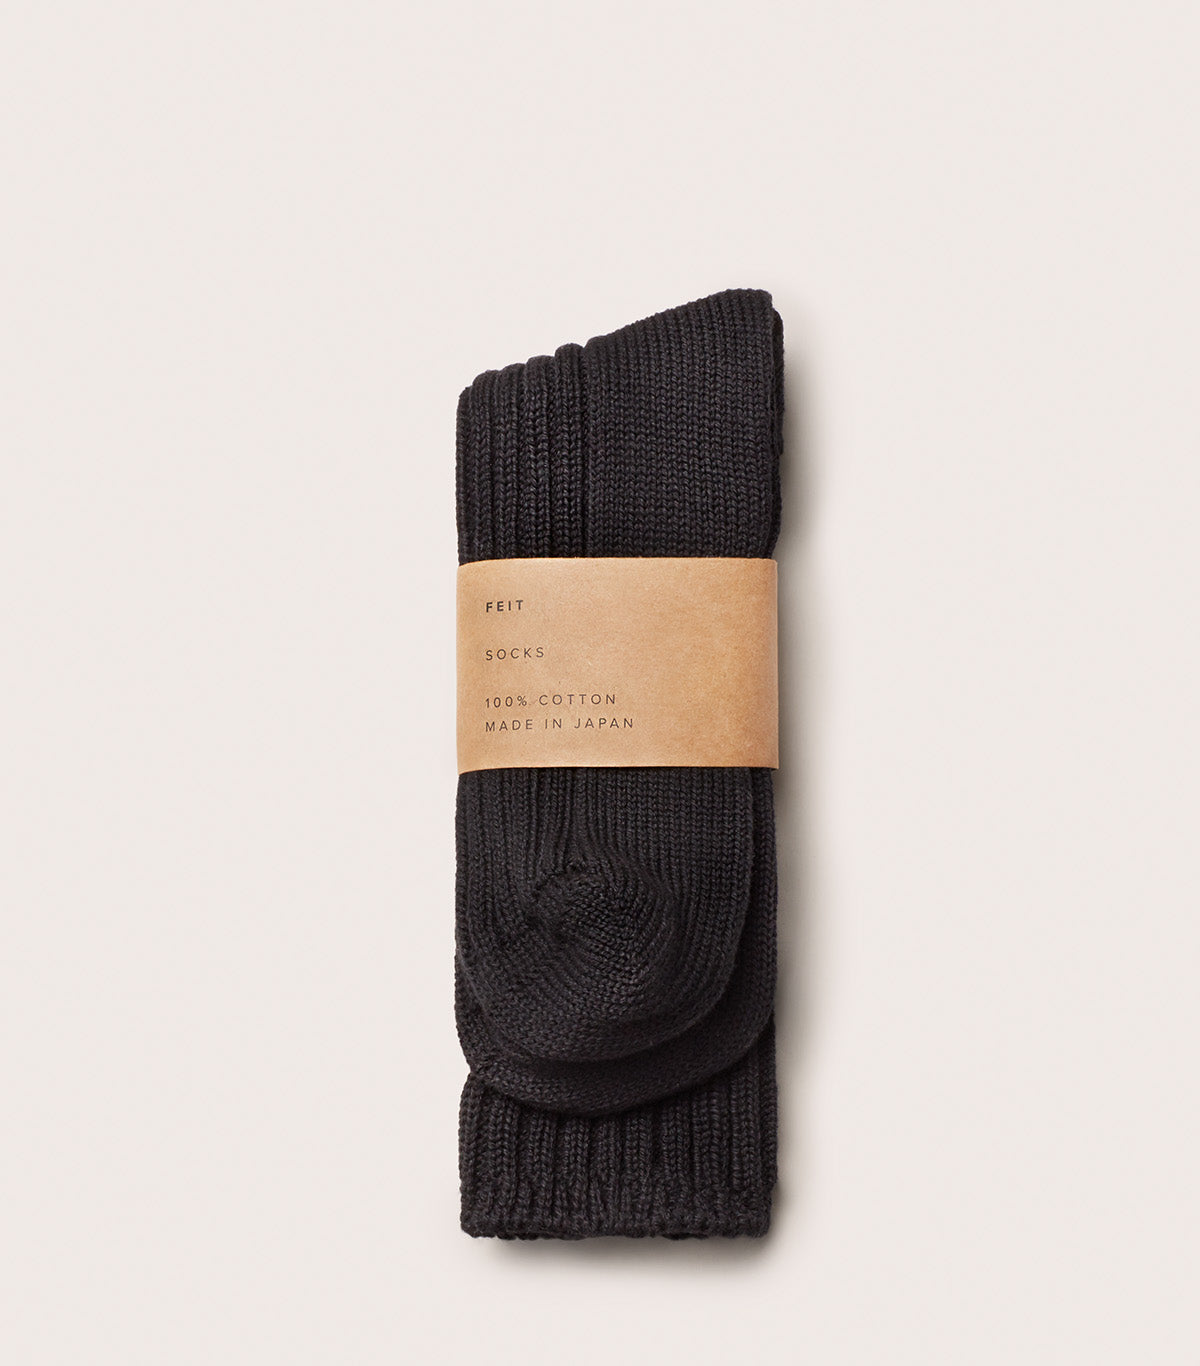 3 Pack Cotton Long Socks - AUSOCKJ3LC_BLK